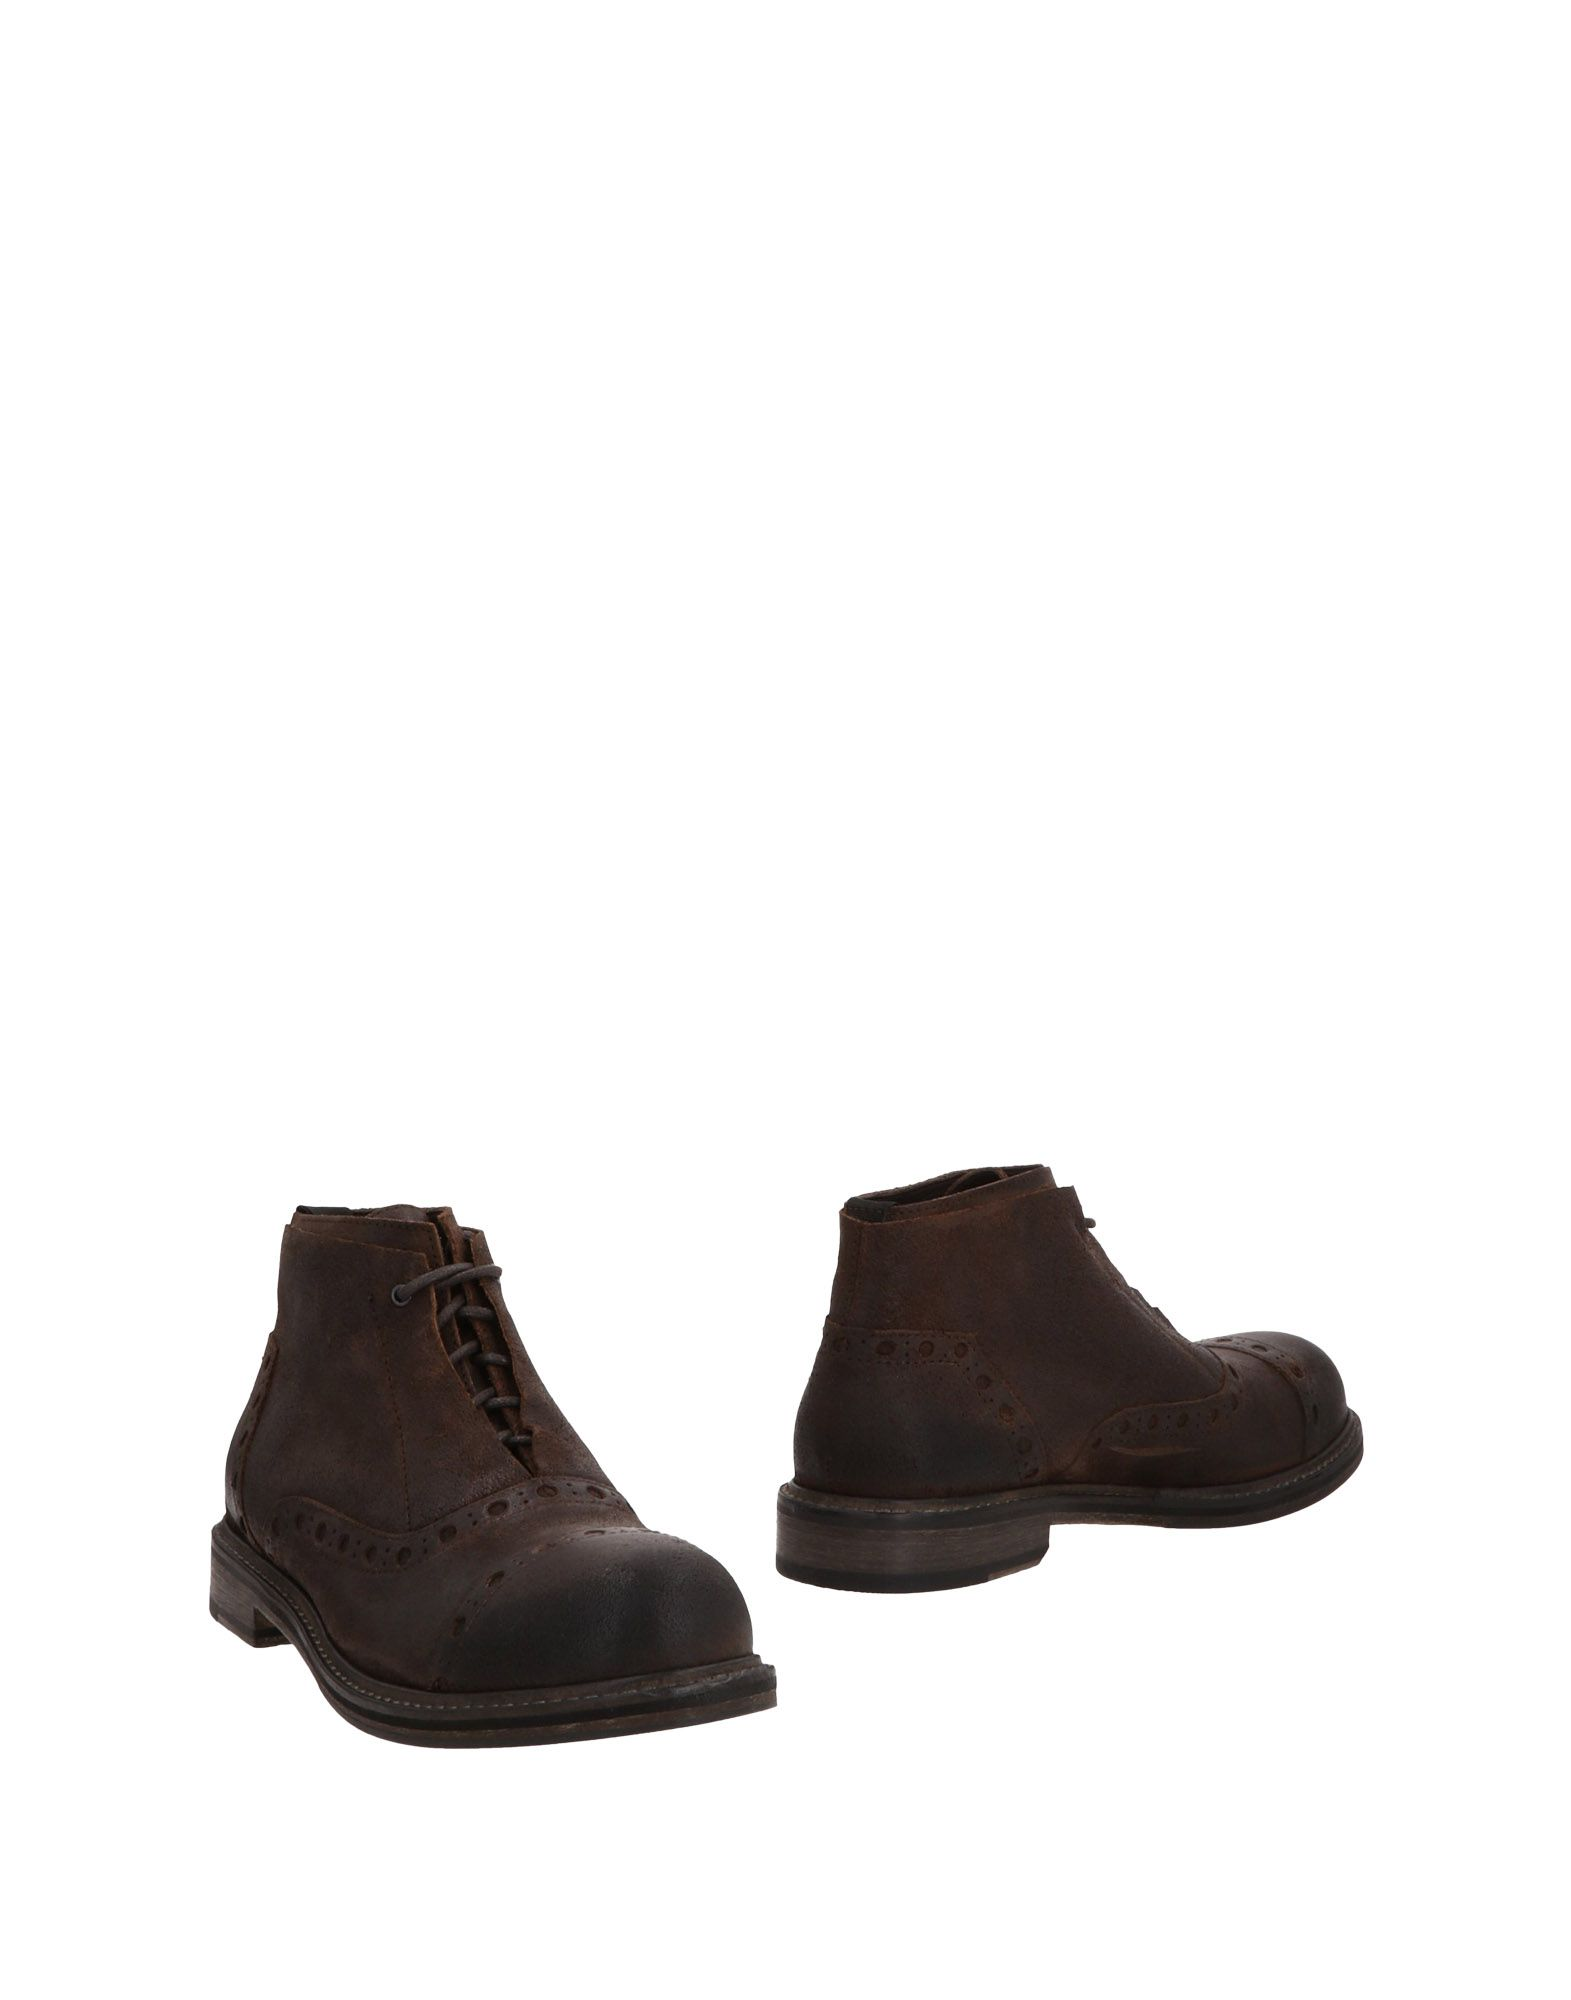 O.X.S. Boots - Australia Men O.X.S. Boots online on  Australia - - 11475997RE db0f3c